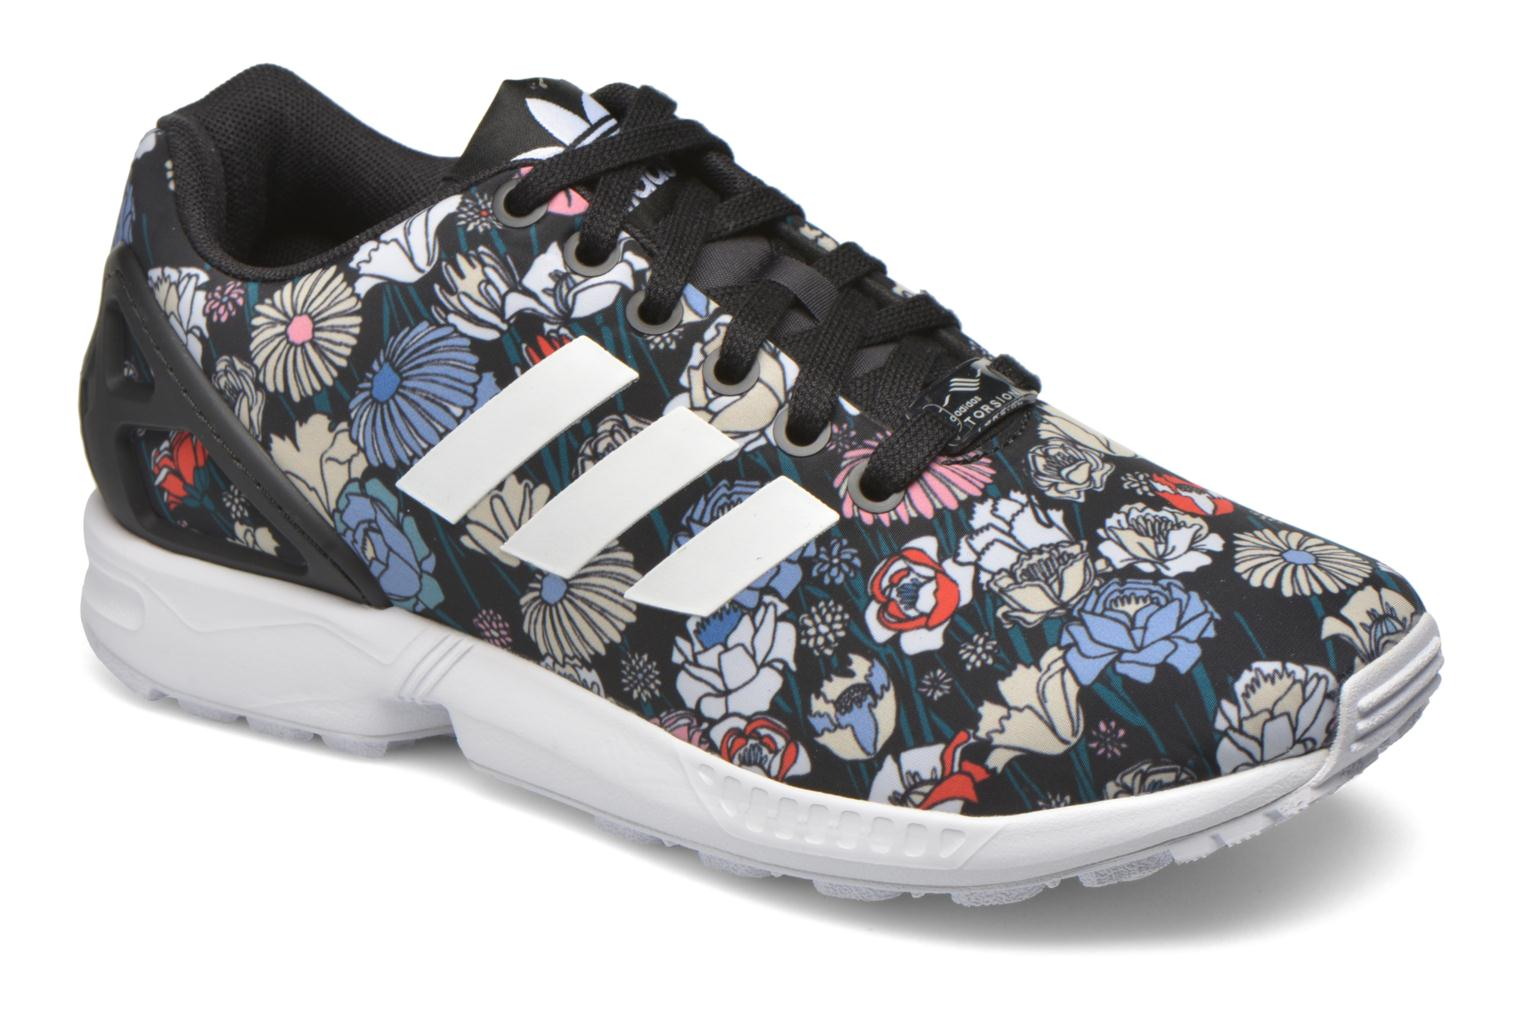 Baskets Adidas Originals Zx Flux W Multicolore vue détail/paire